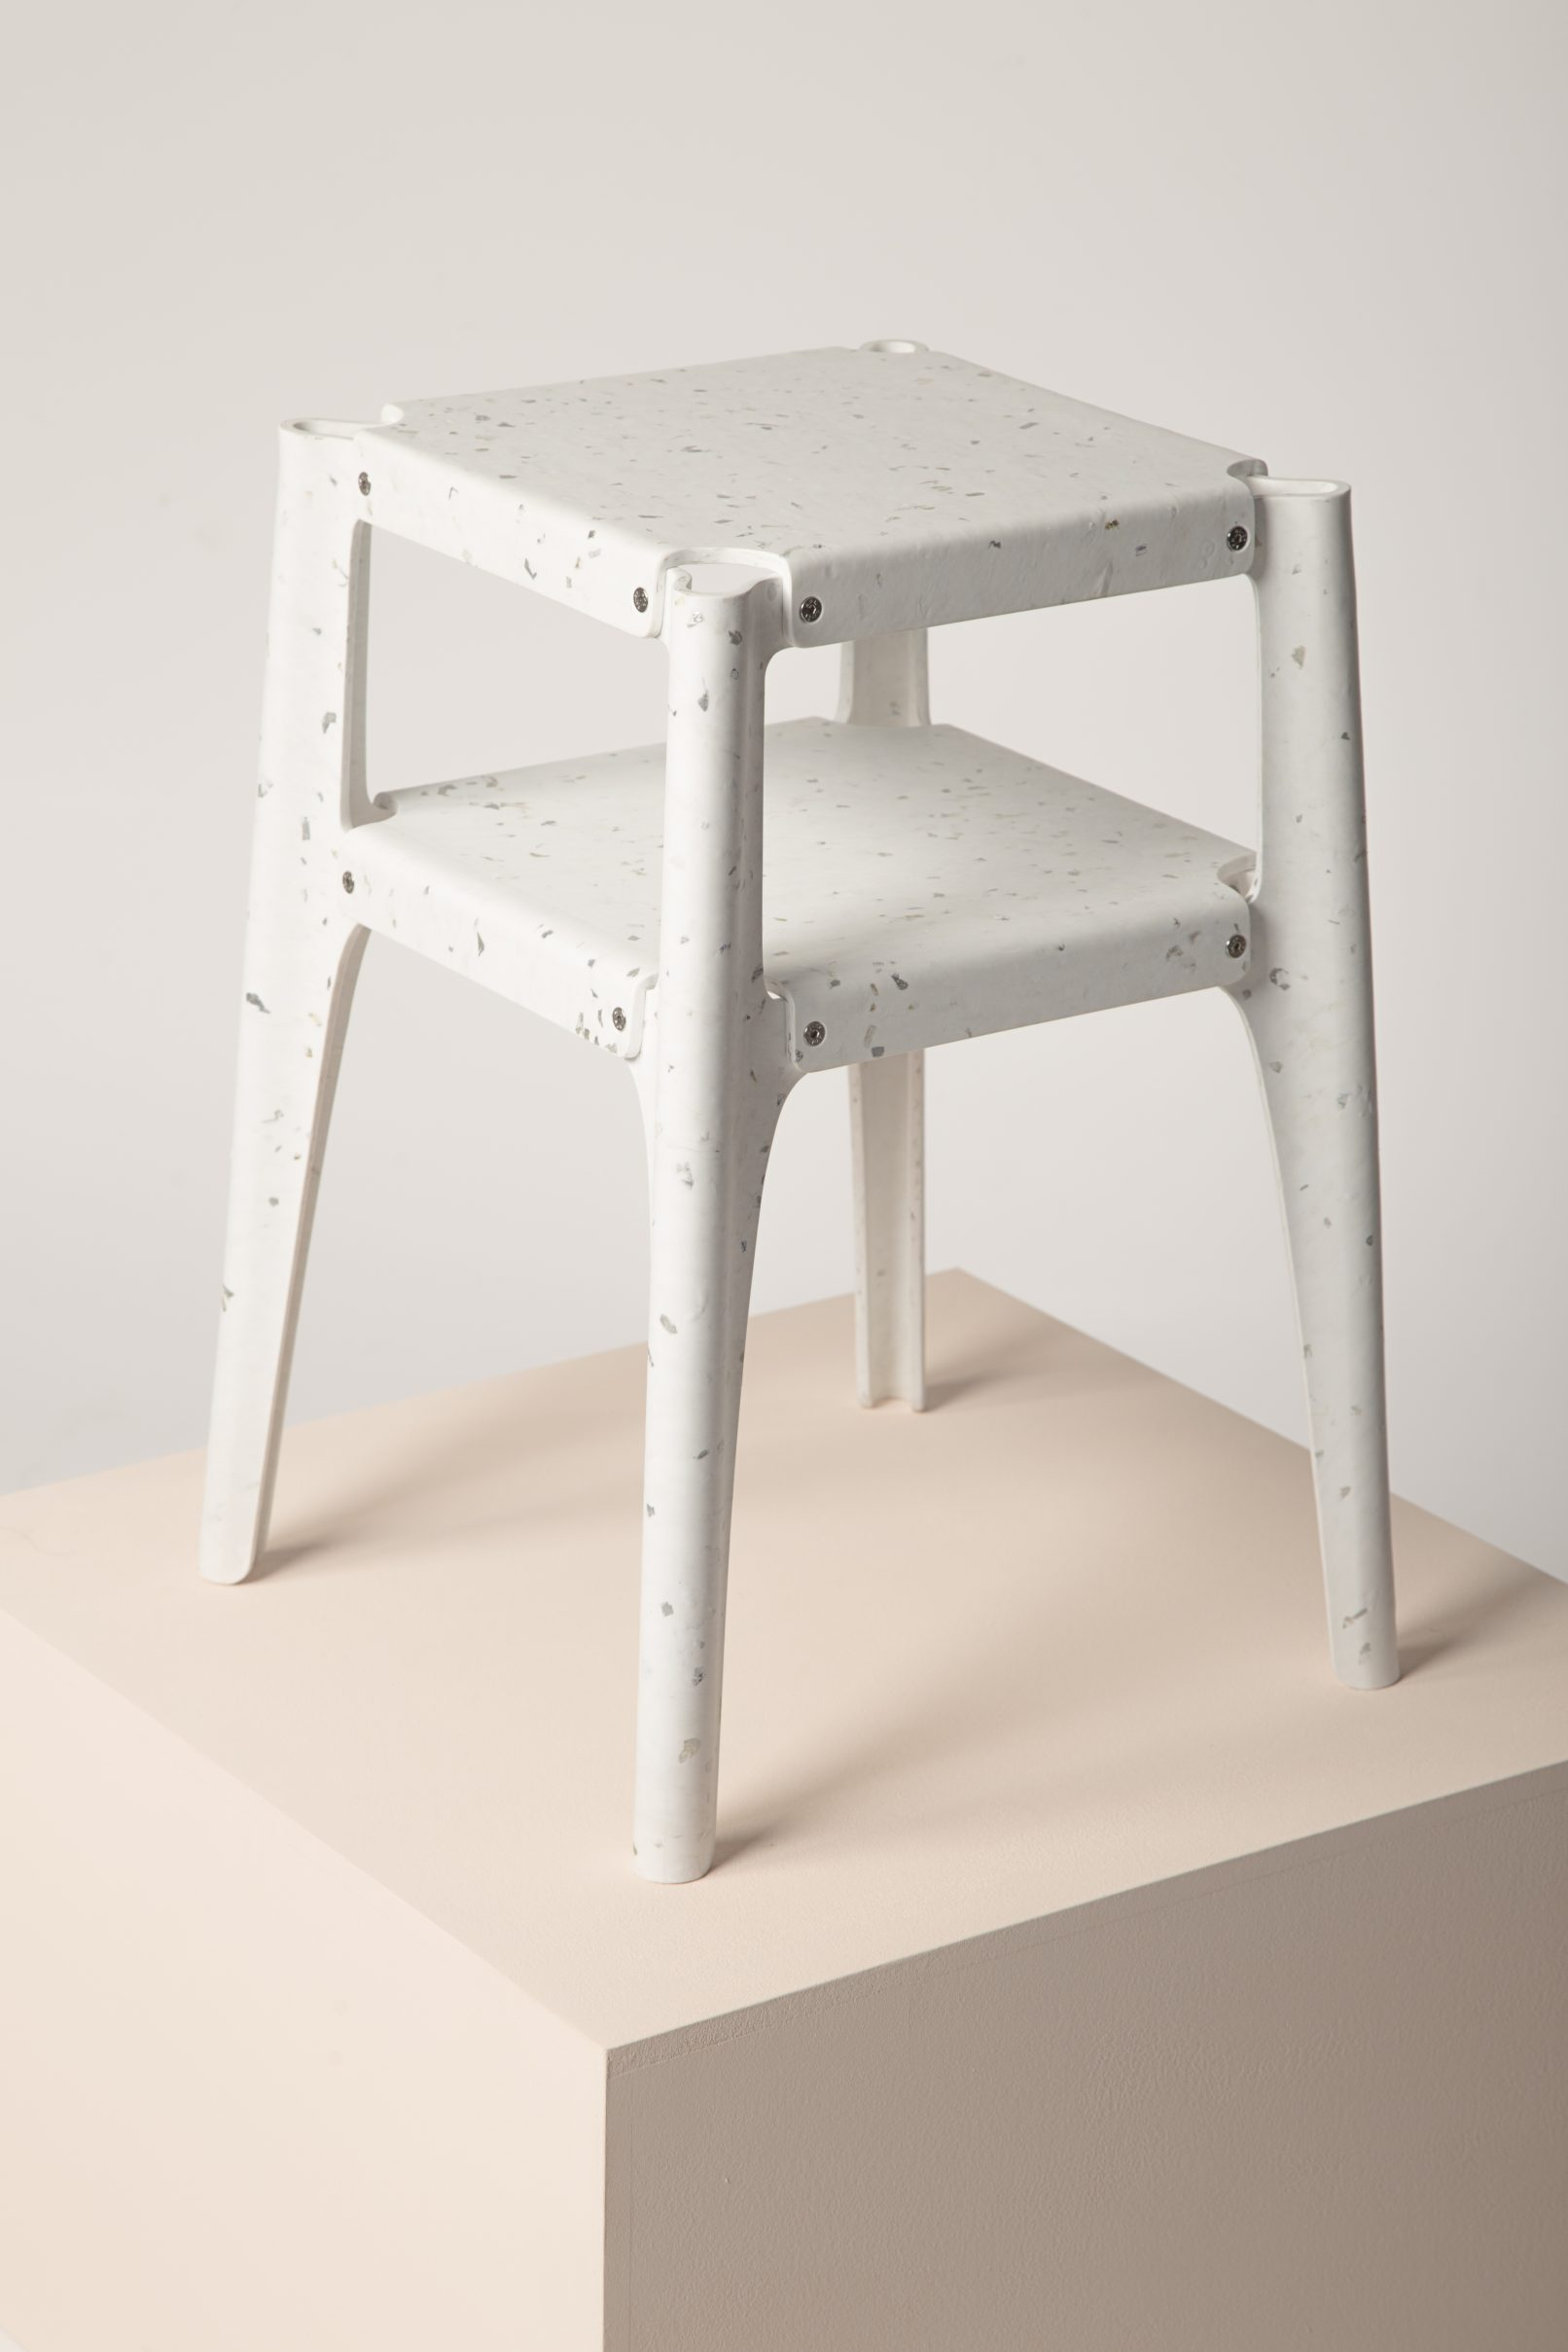 Recycled plastic stool winning the Guiltess Plastic Prize: one of the plastic recycling initiatives presented at Milan Design Week.